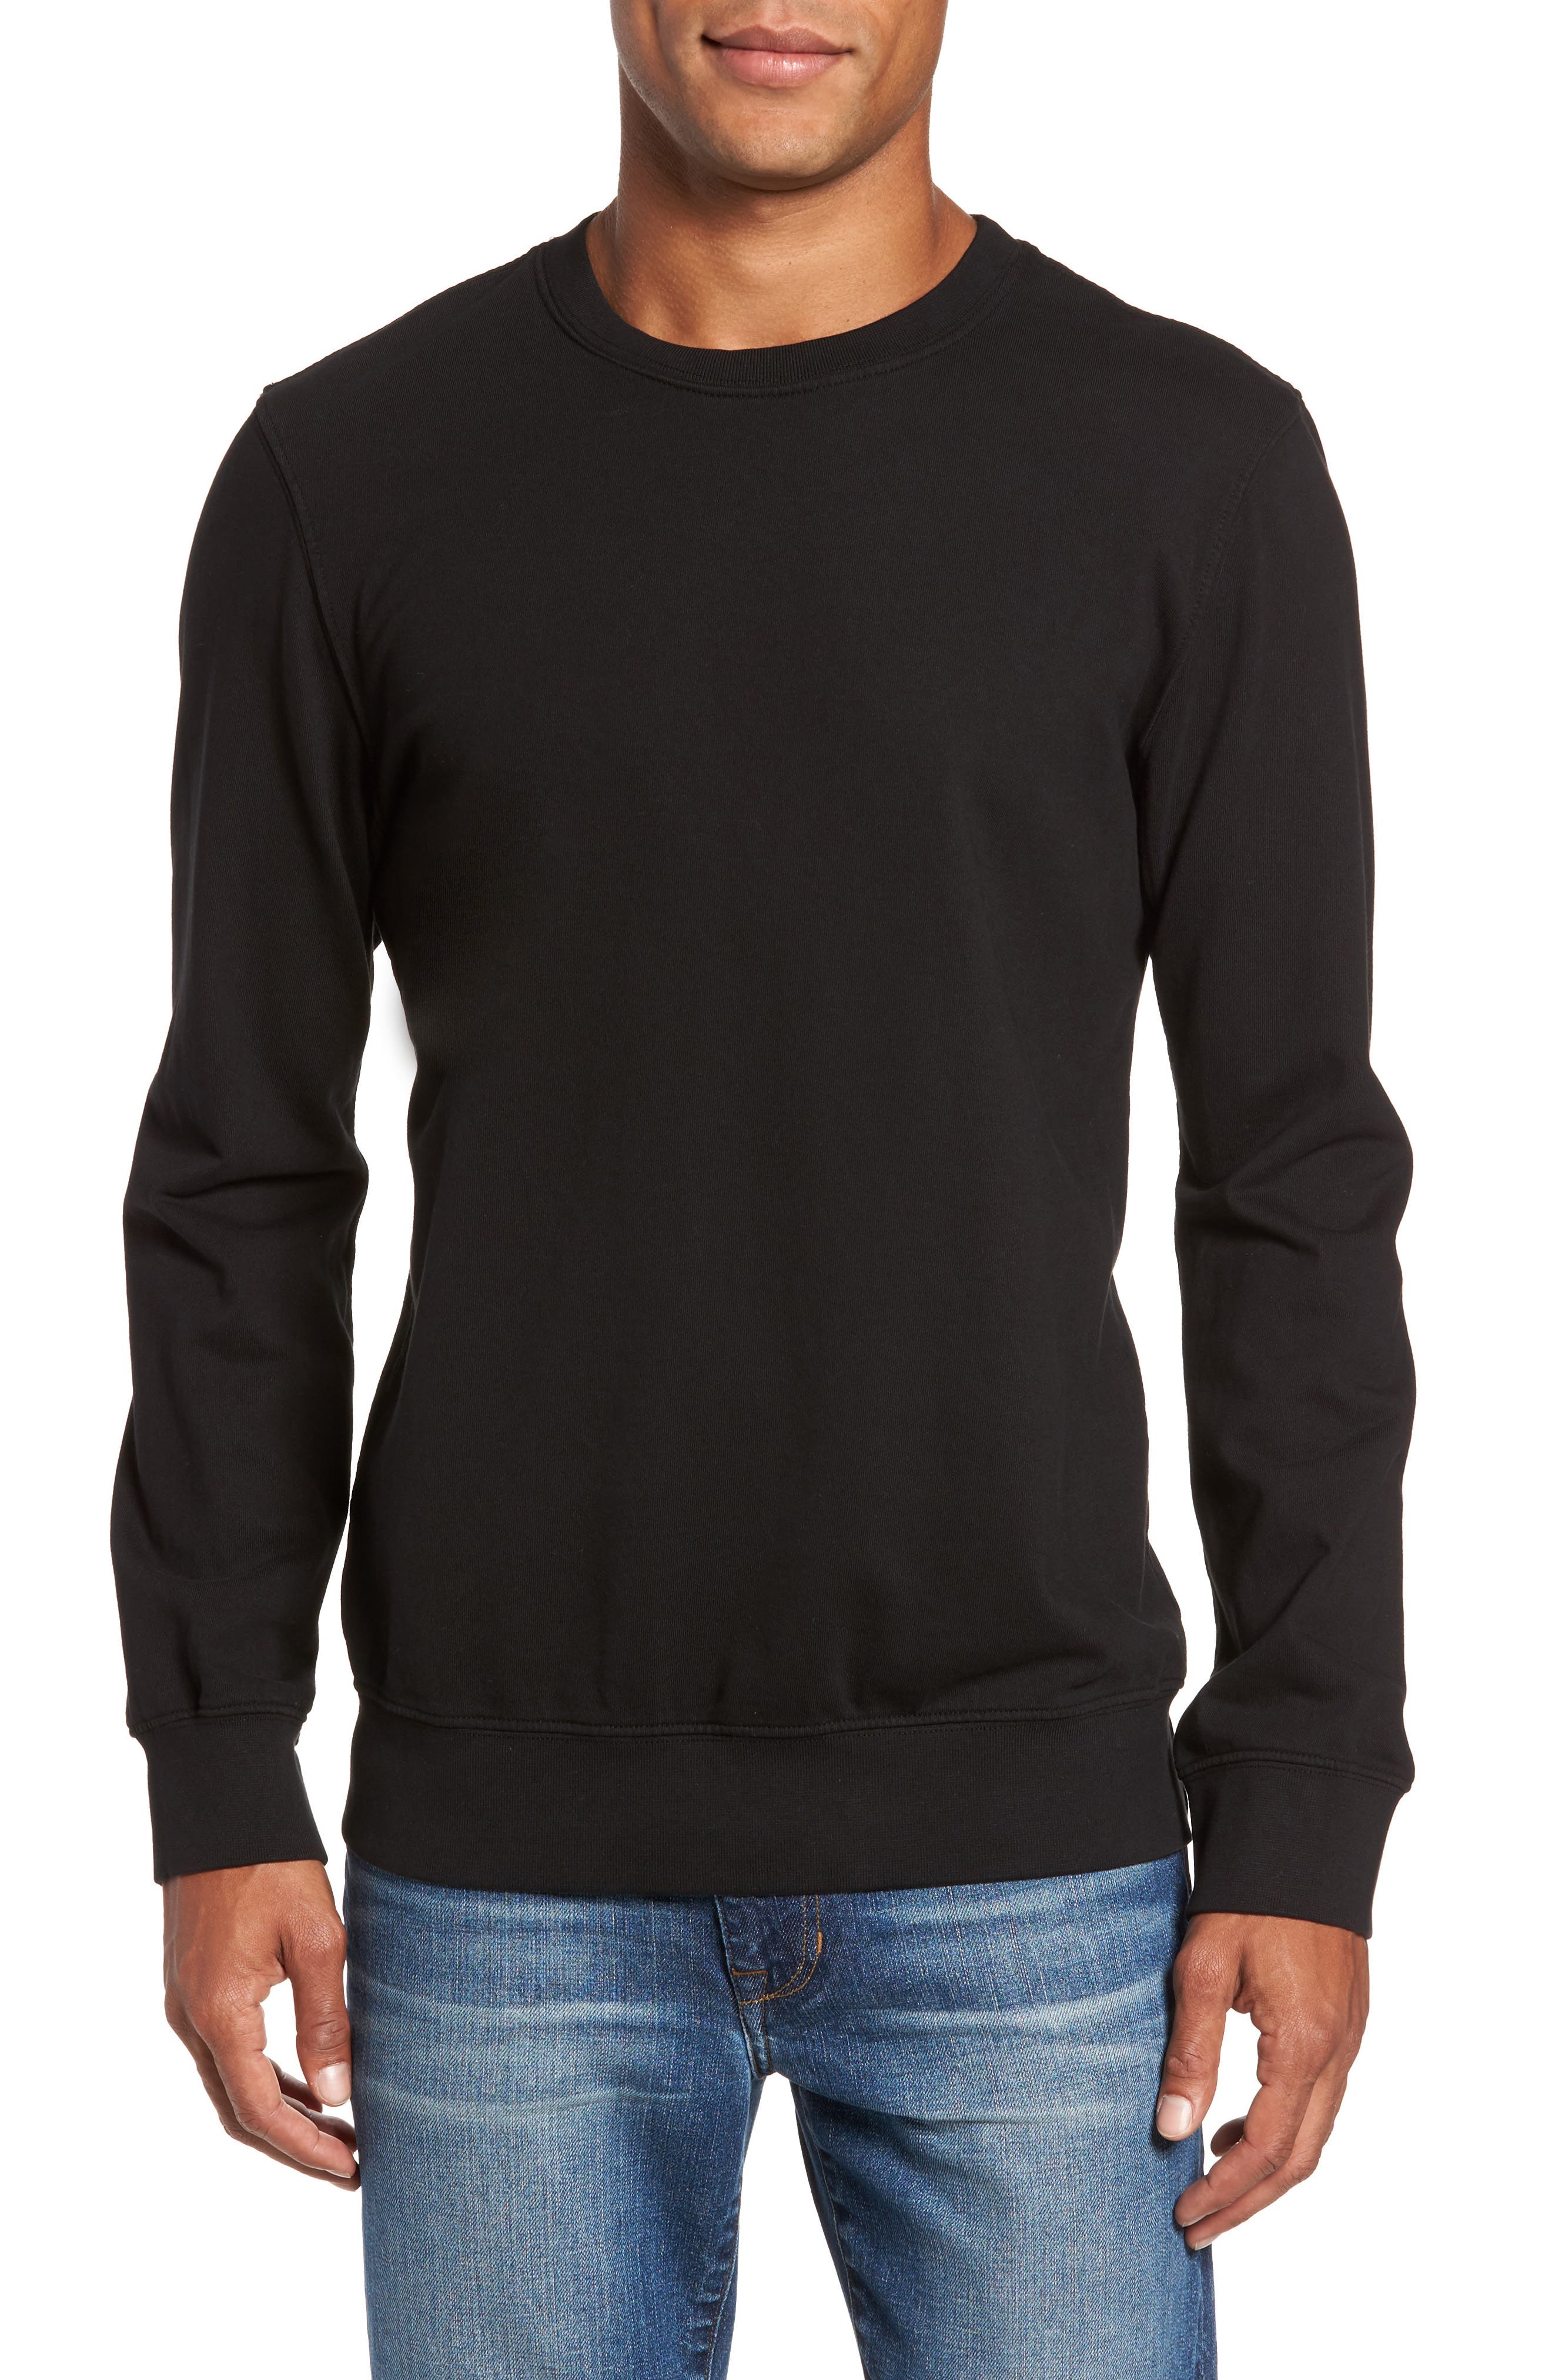 French Terry Sweatshirt,                         Main,                         color, 001